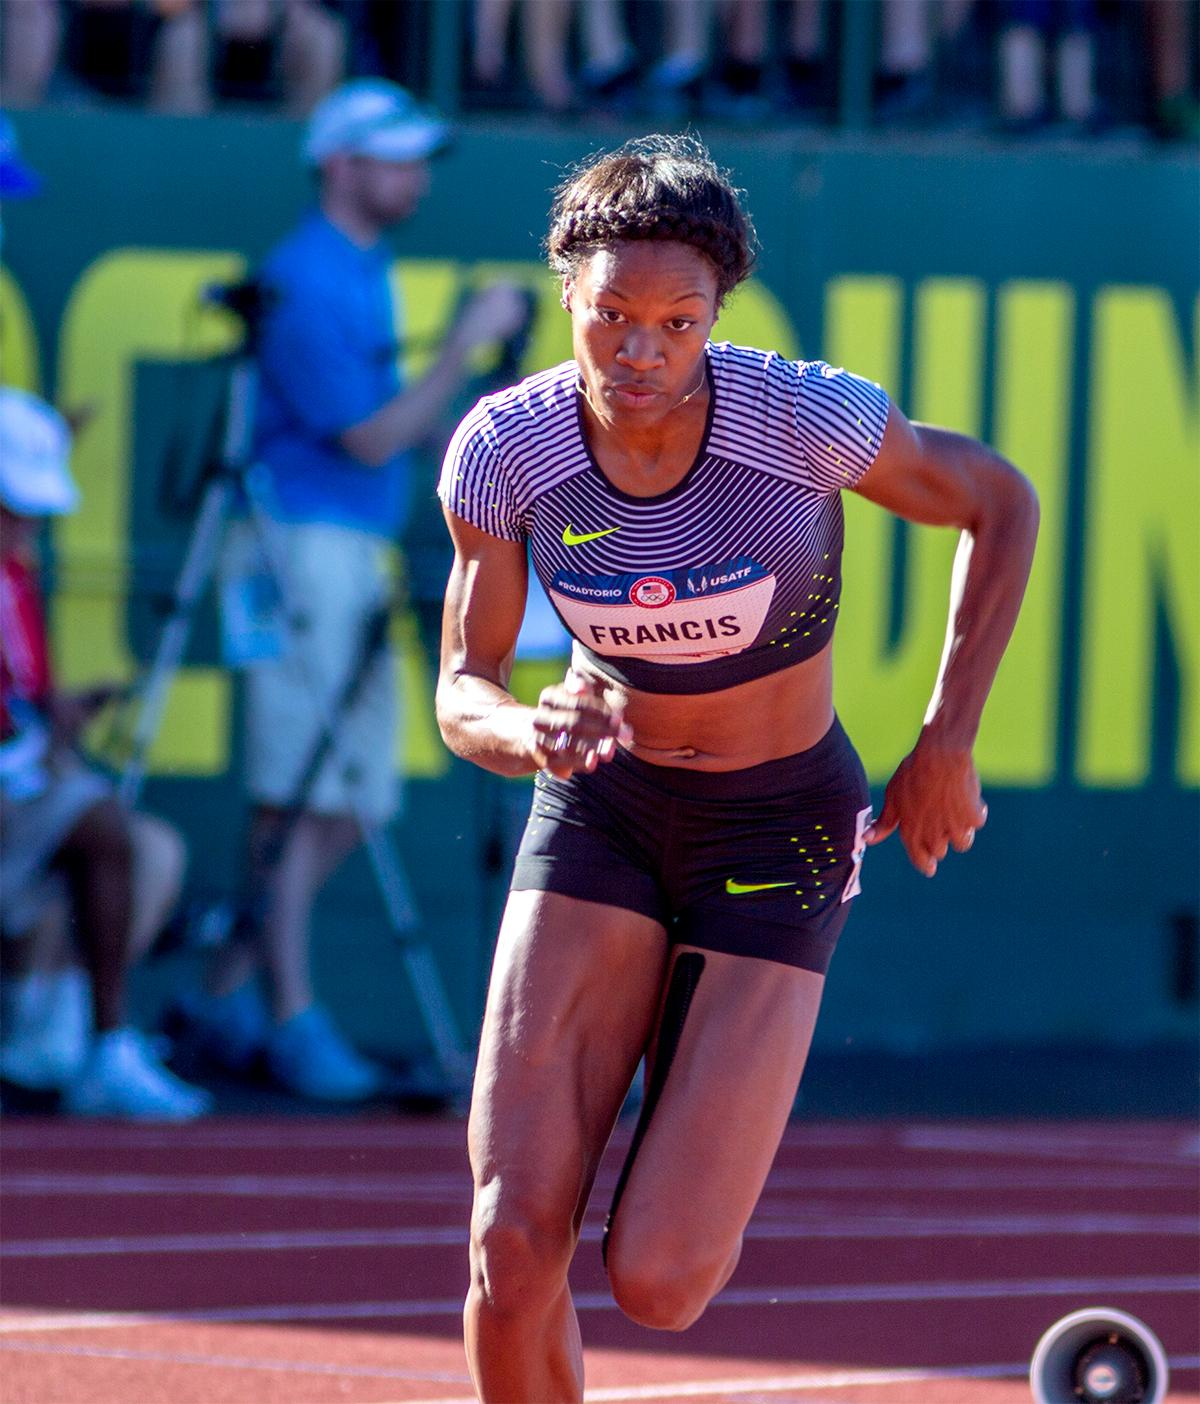 Nike's Phyllis Francis sprints off the starting blocks in the women's 400m. Francis won her heat and placed second overall with a time of 50.81. Day one of the U.S. Olympic Trials Track and Field began on Friday at Hayward Field in Eugene, Oregon and will continue through July 10. Photo by August Frank, Oregon News Lab